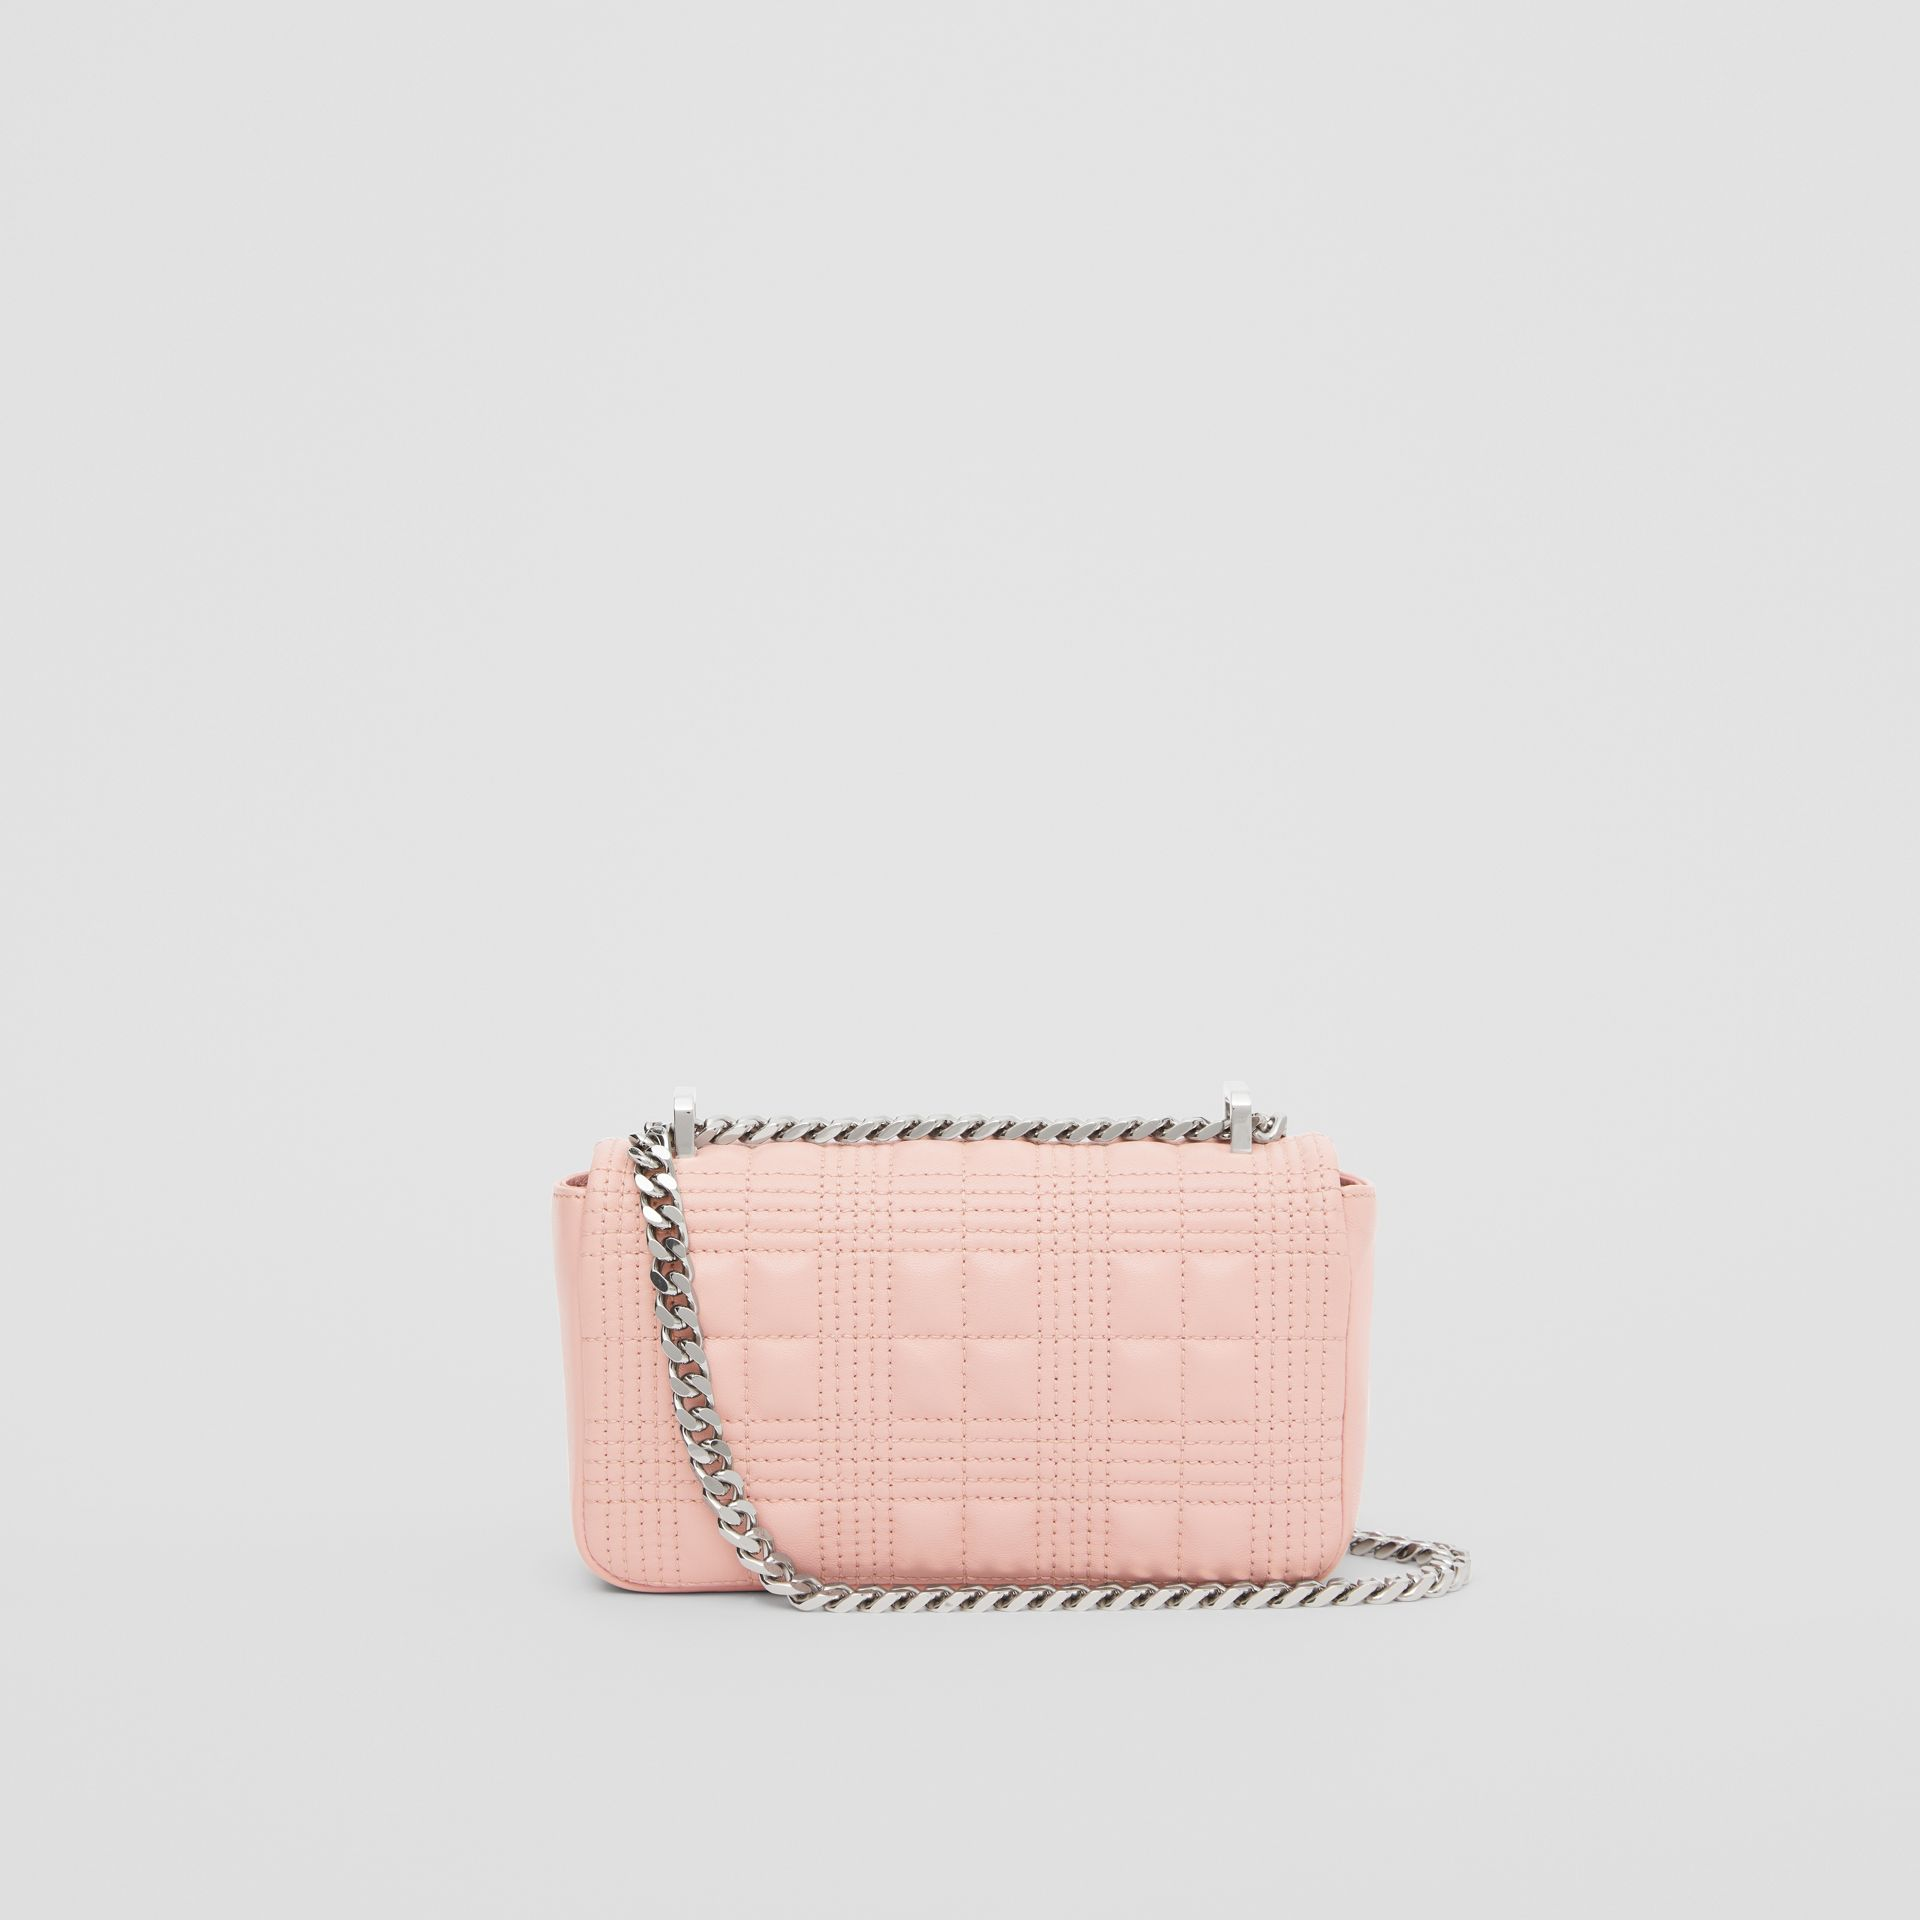 Mini Quilted Lambskin Lola Bag in Blush Pink - Women | Burberry Canada - gallery image 7